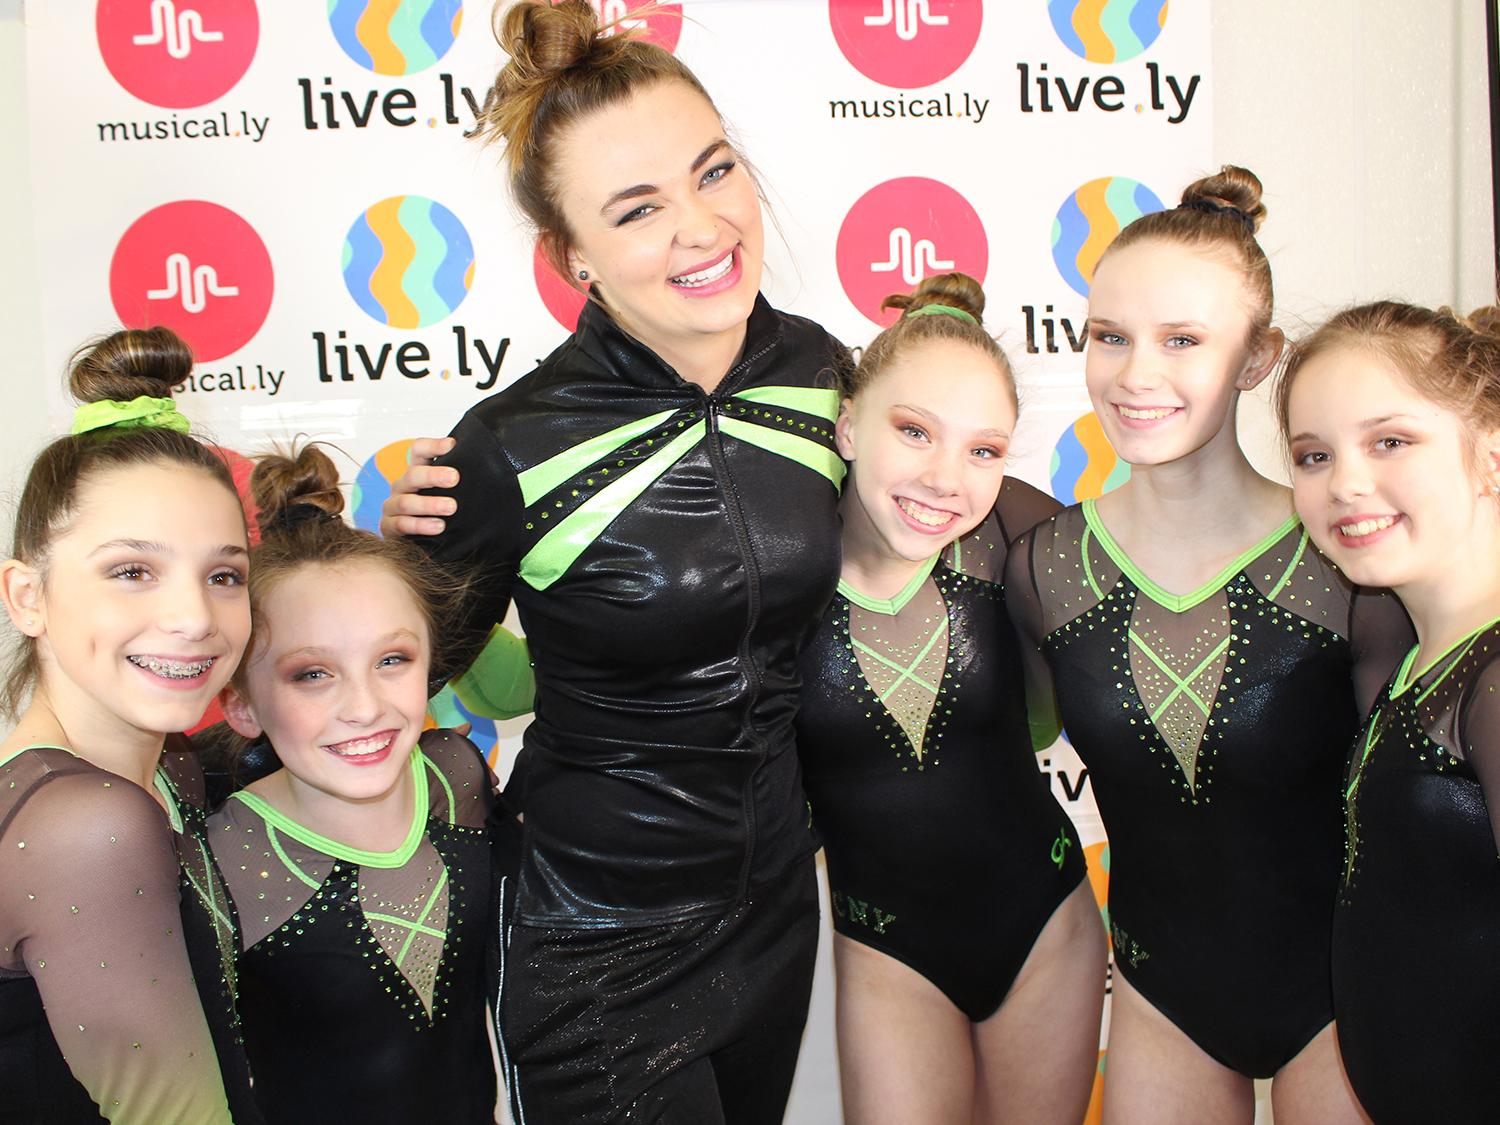 Joely Rice with gymnasts at photo shoot for her online show